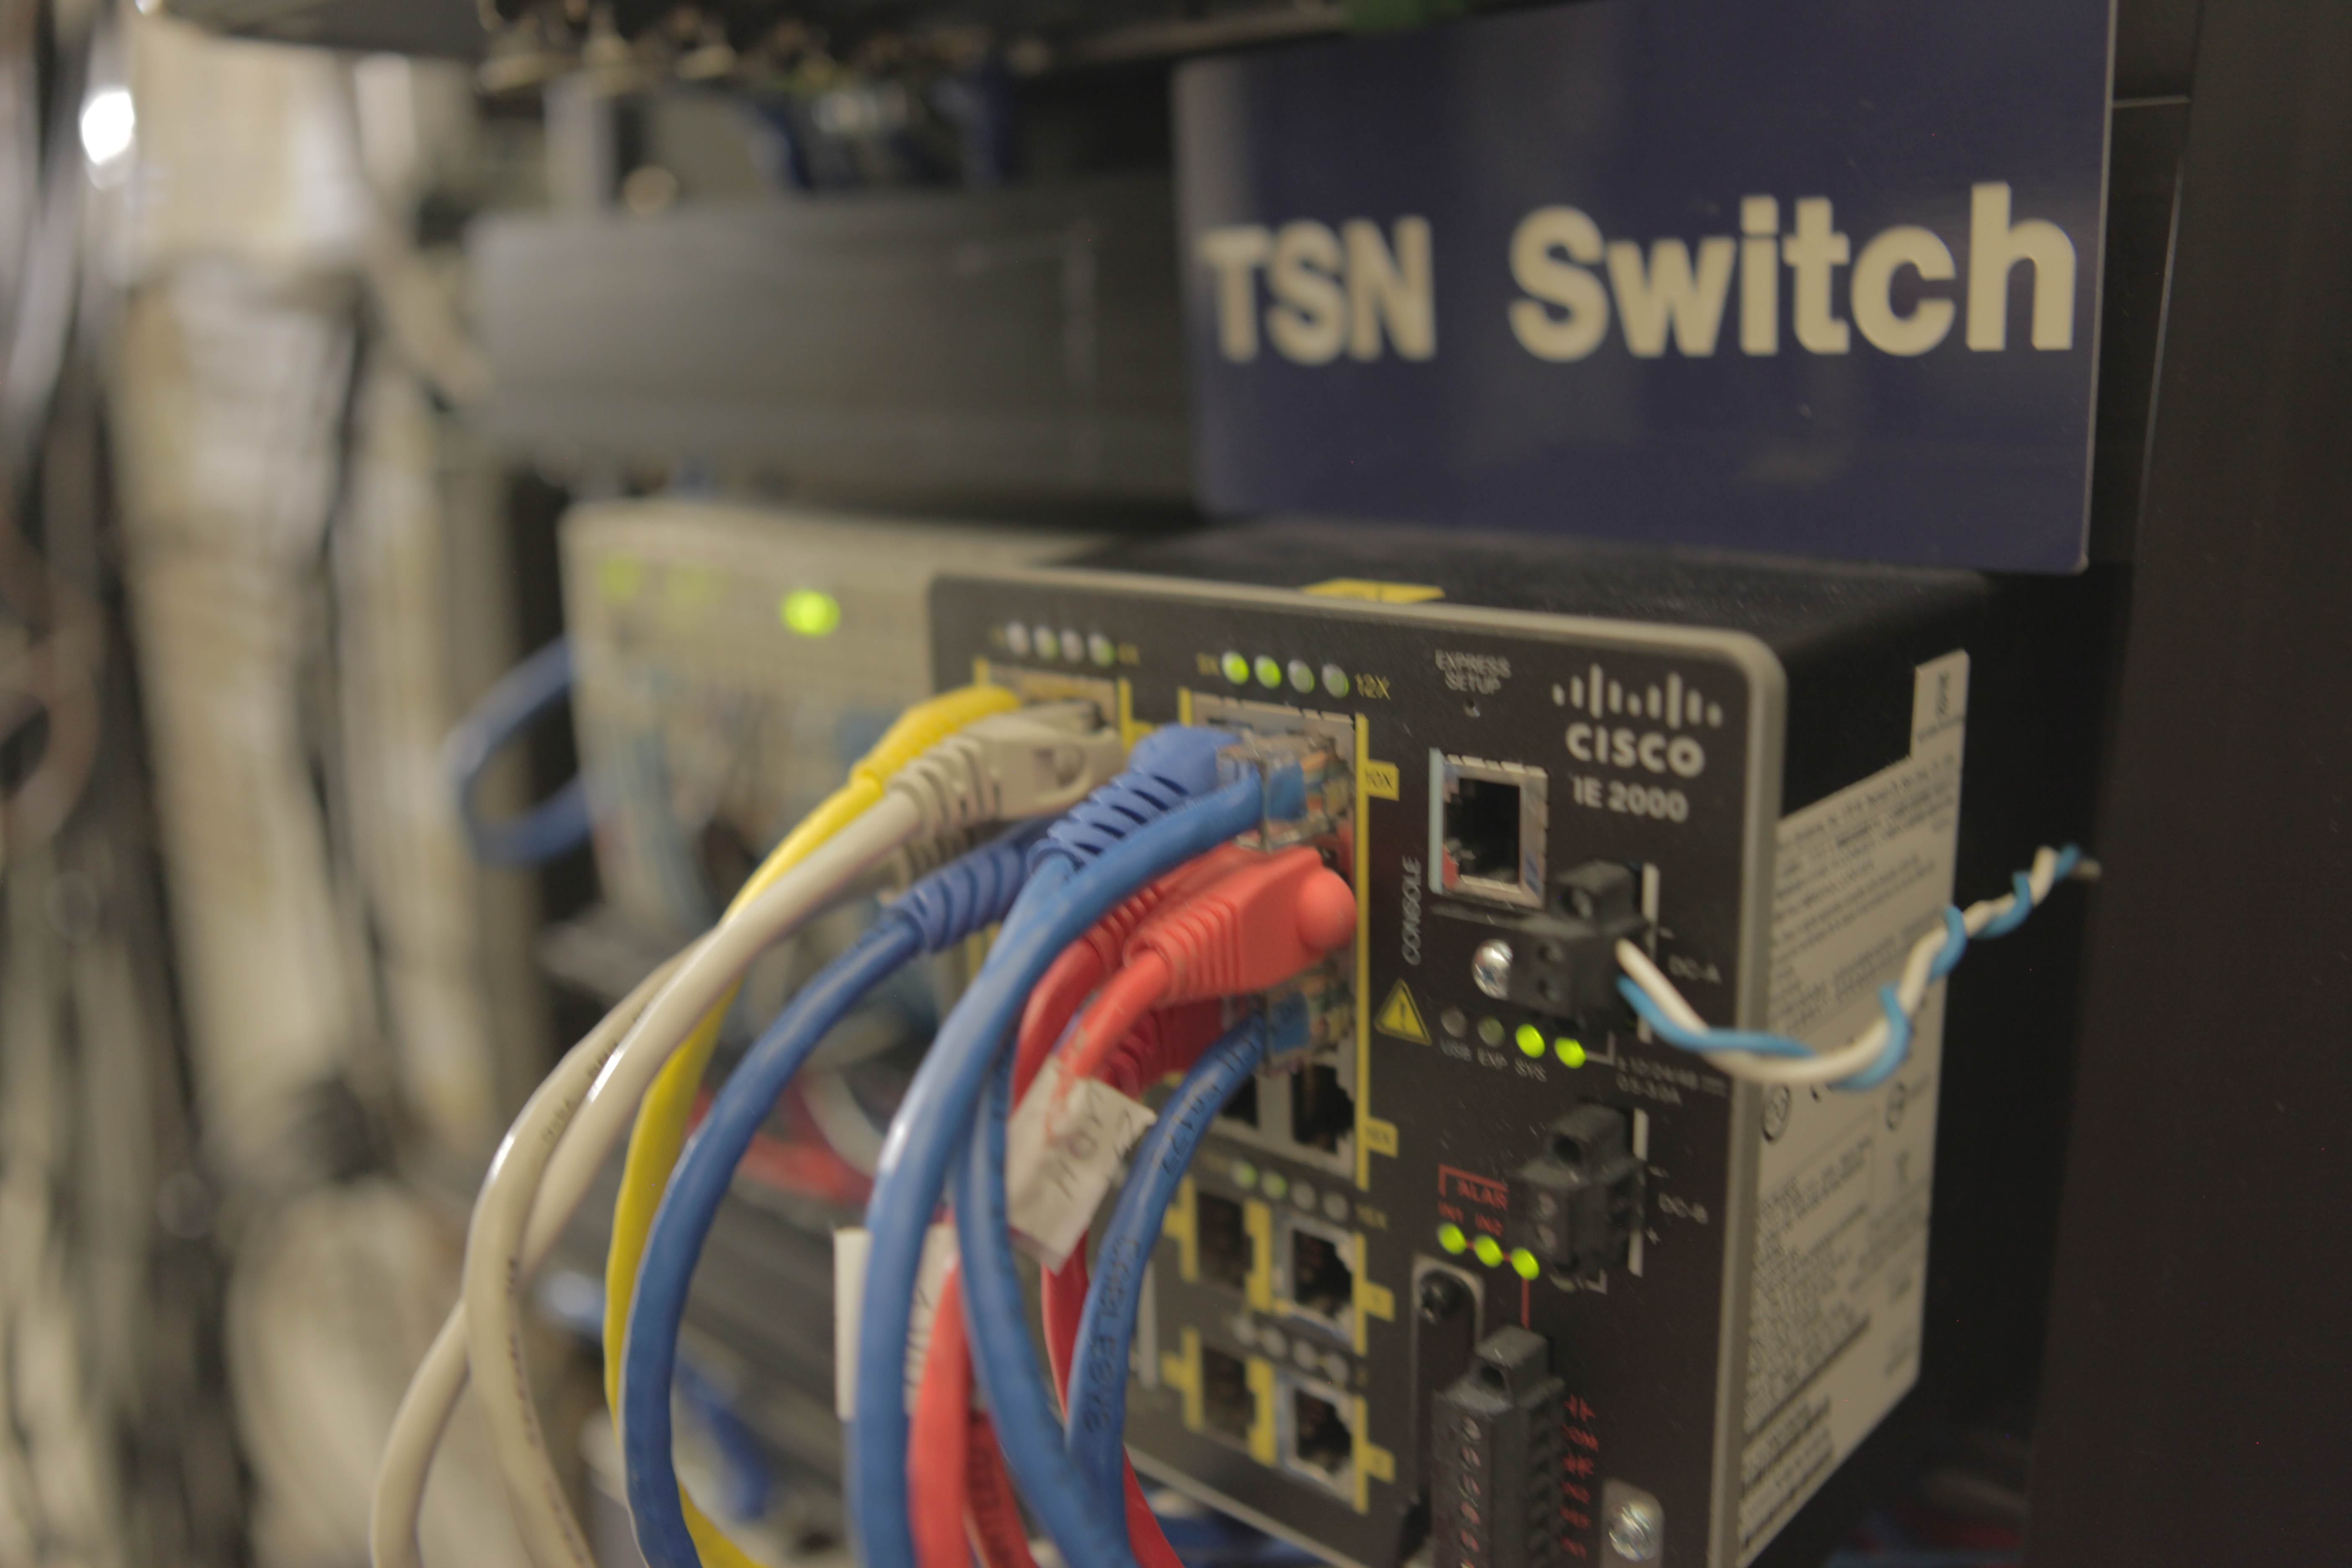 """A <a href=""""https://en.wikipedia.org/wiki/Time-Sensitive_Networking"""">time-sensitive networking switch</a> used in an industrial control traffic network."""